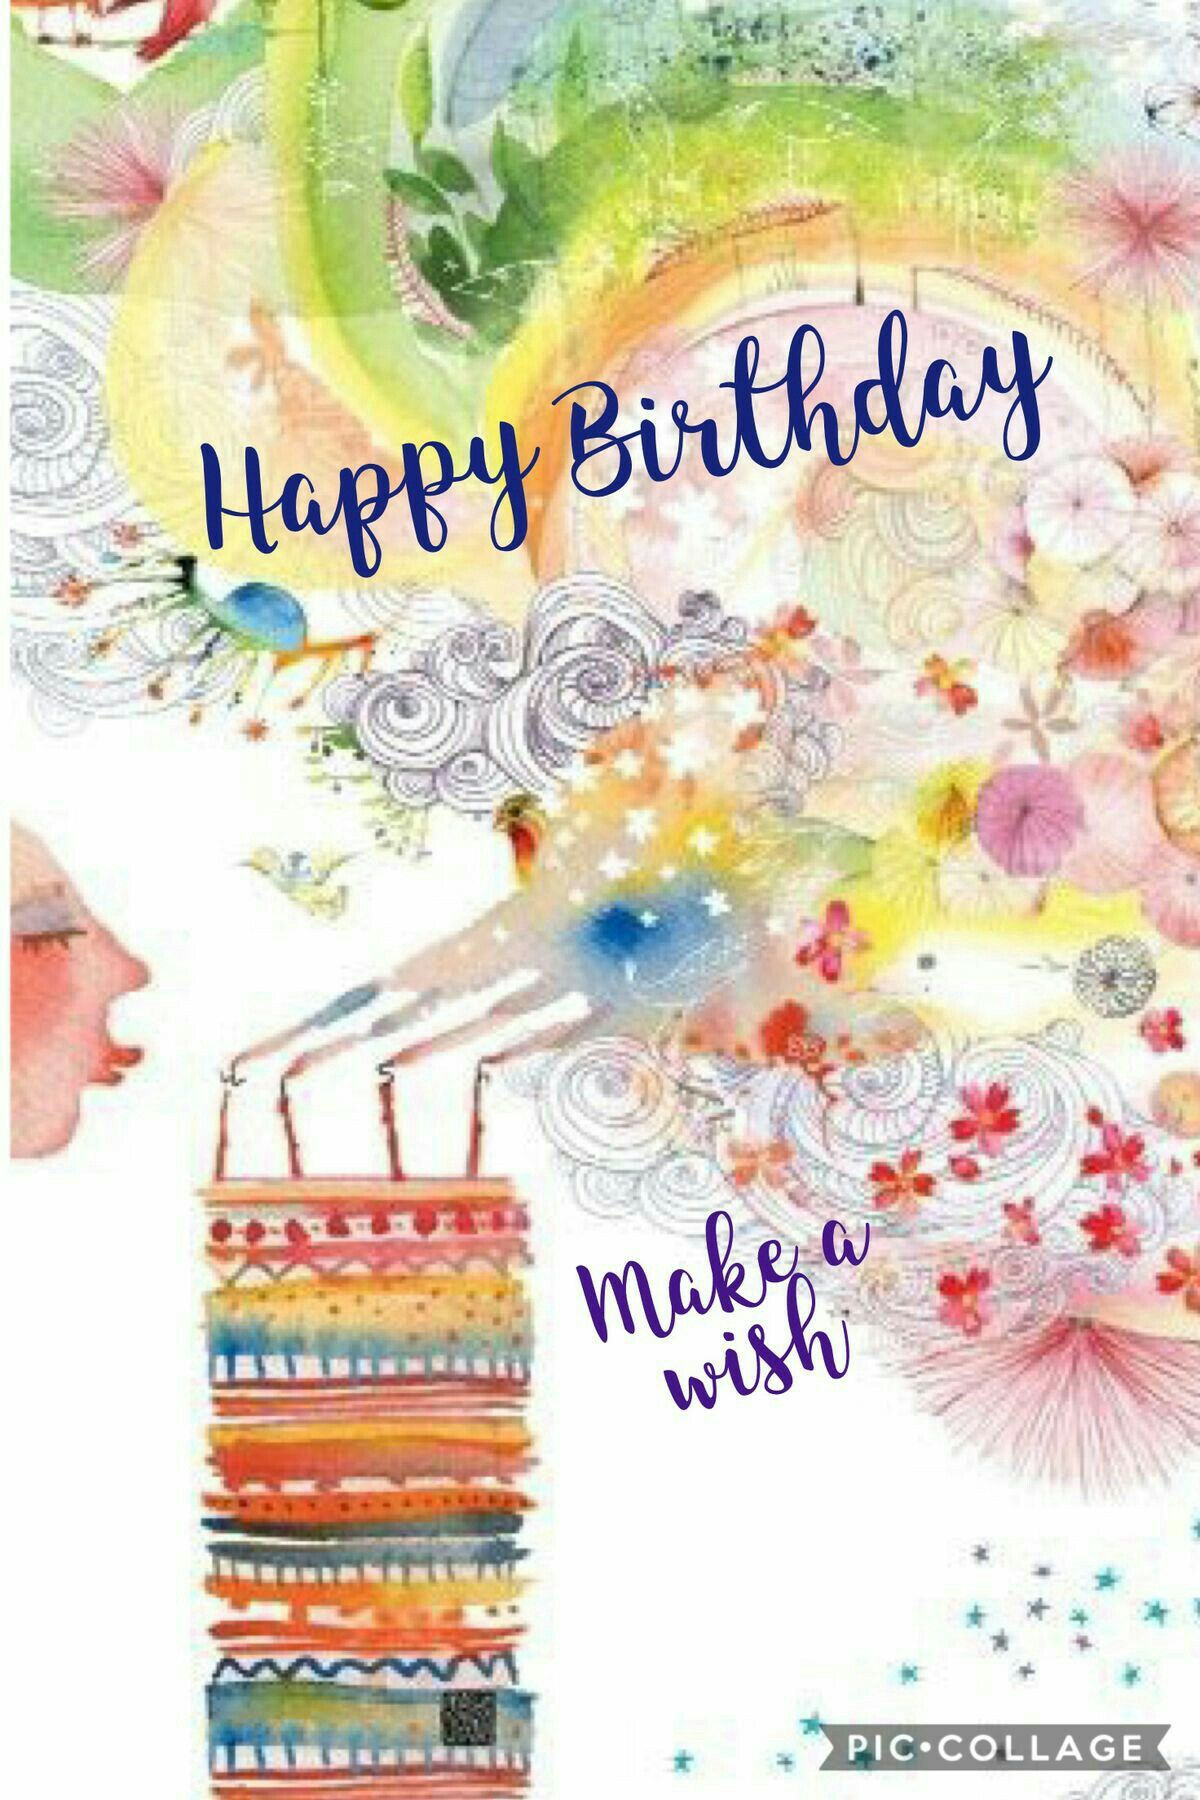 Pin By Becky Hill On Birthday Wishes With Images Happy Birthday Gifts Happy Birthday Messages Happy Birthday Cards